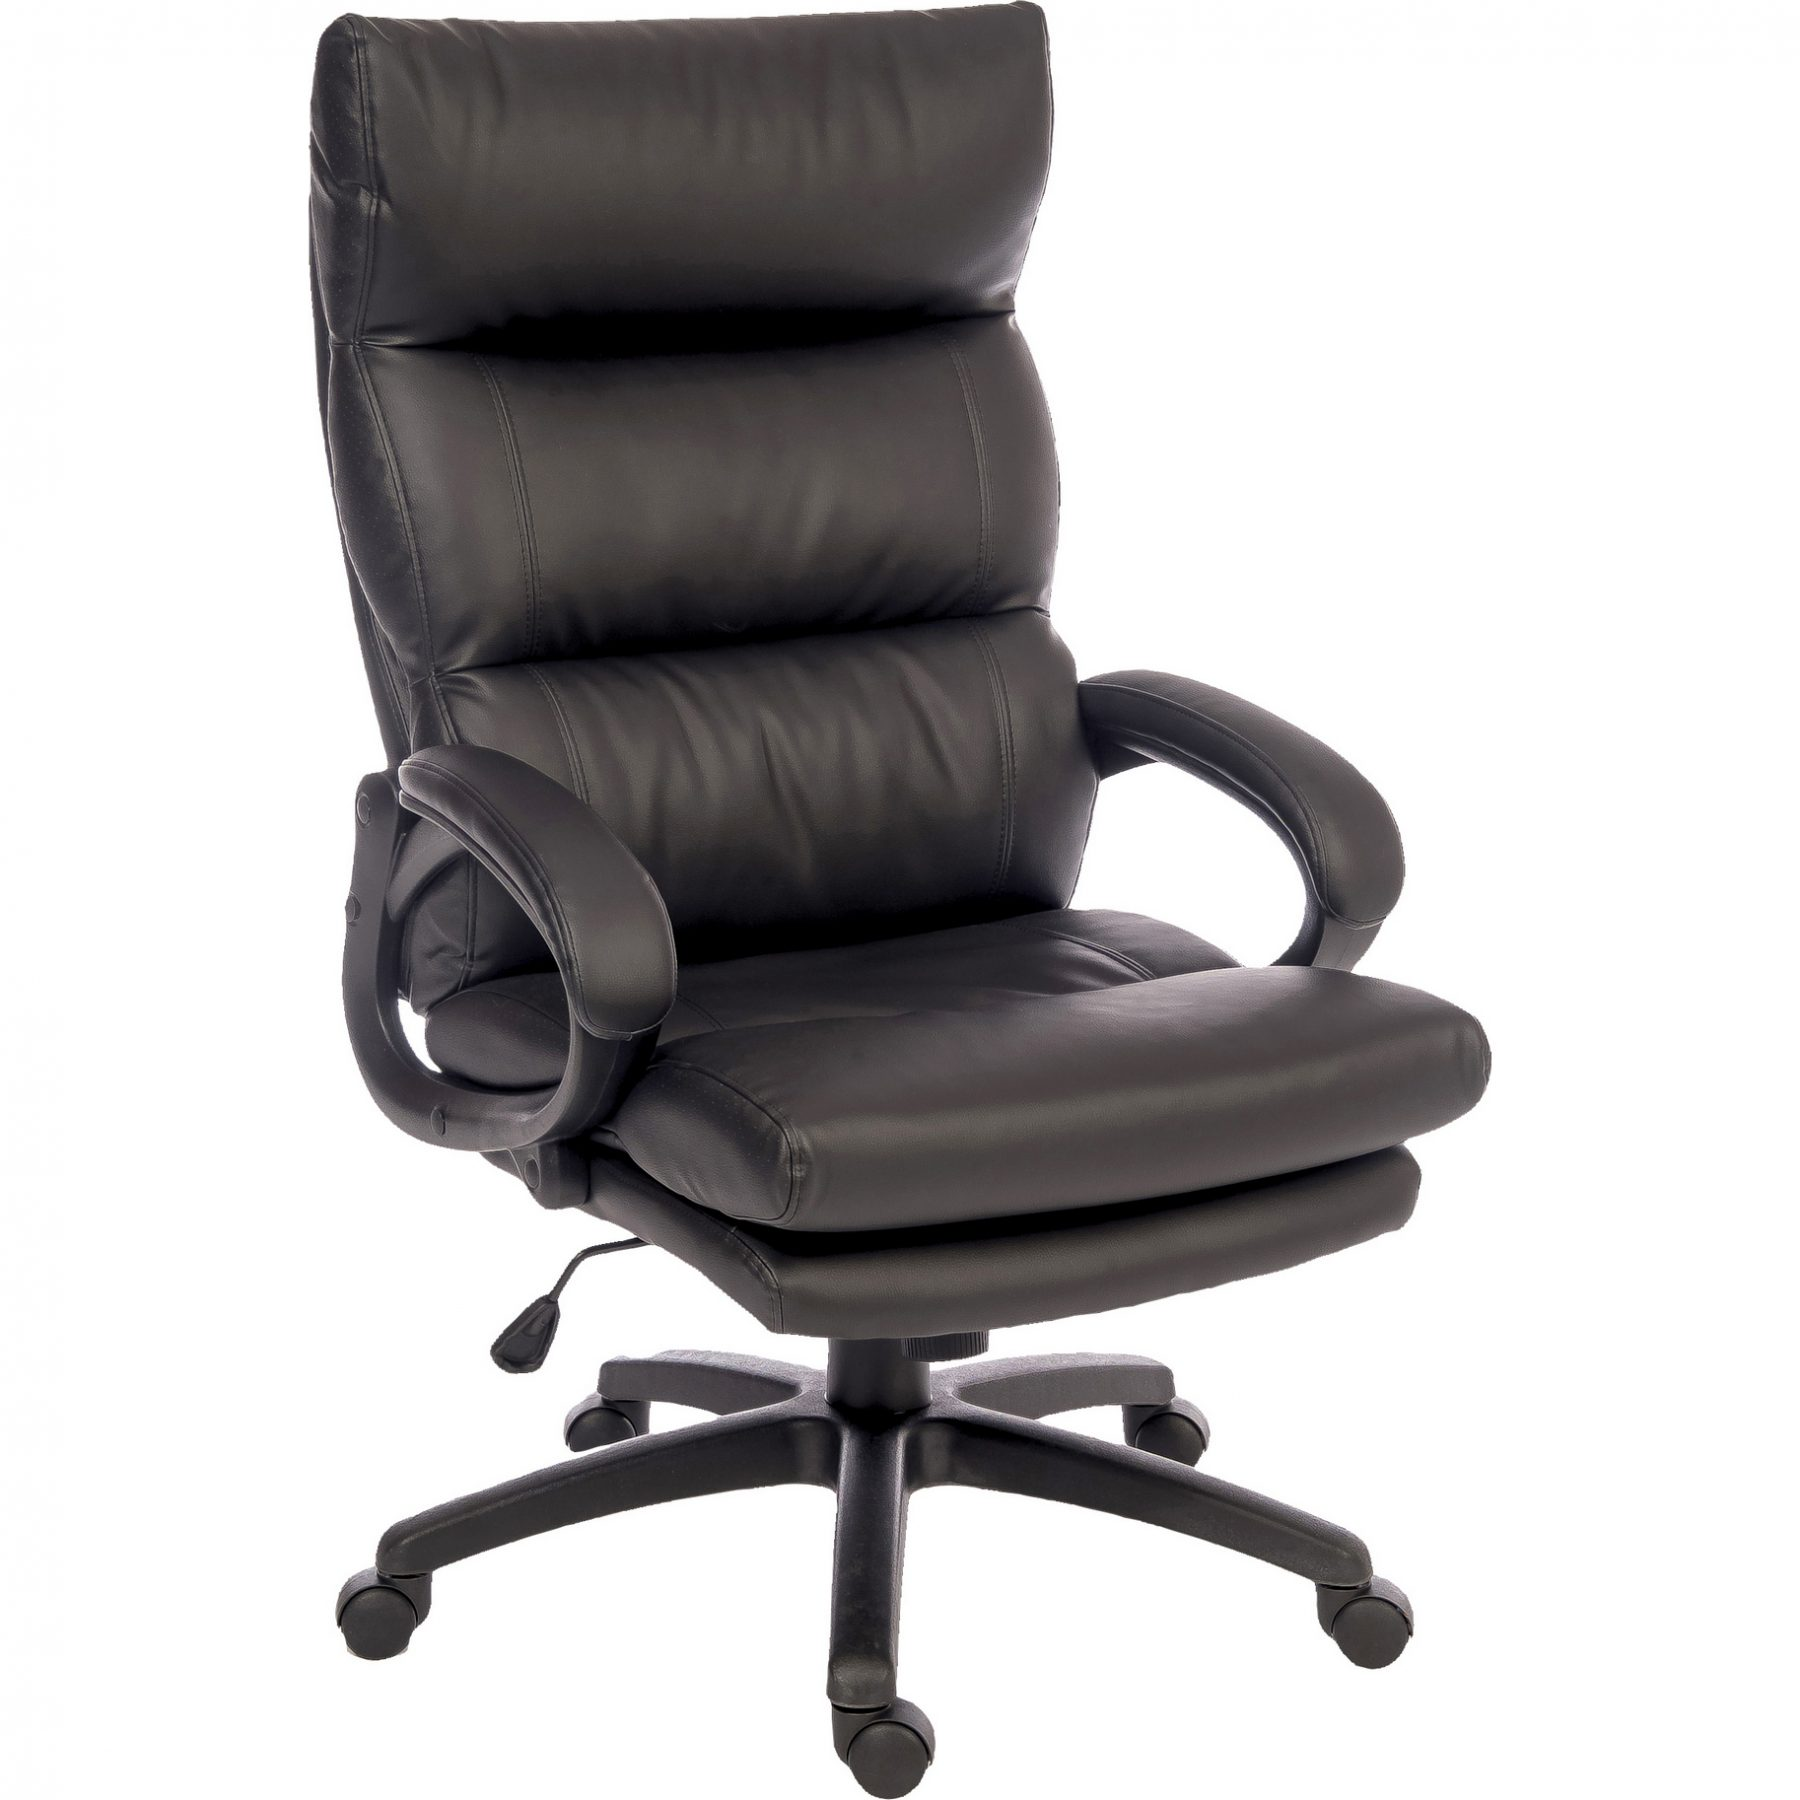 Faux Leather Chair Lincoln Luxury Black Office Chair Faux Leather Home